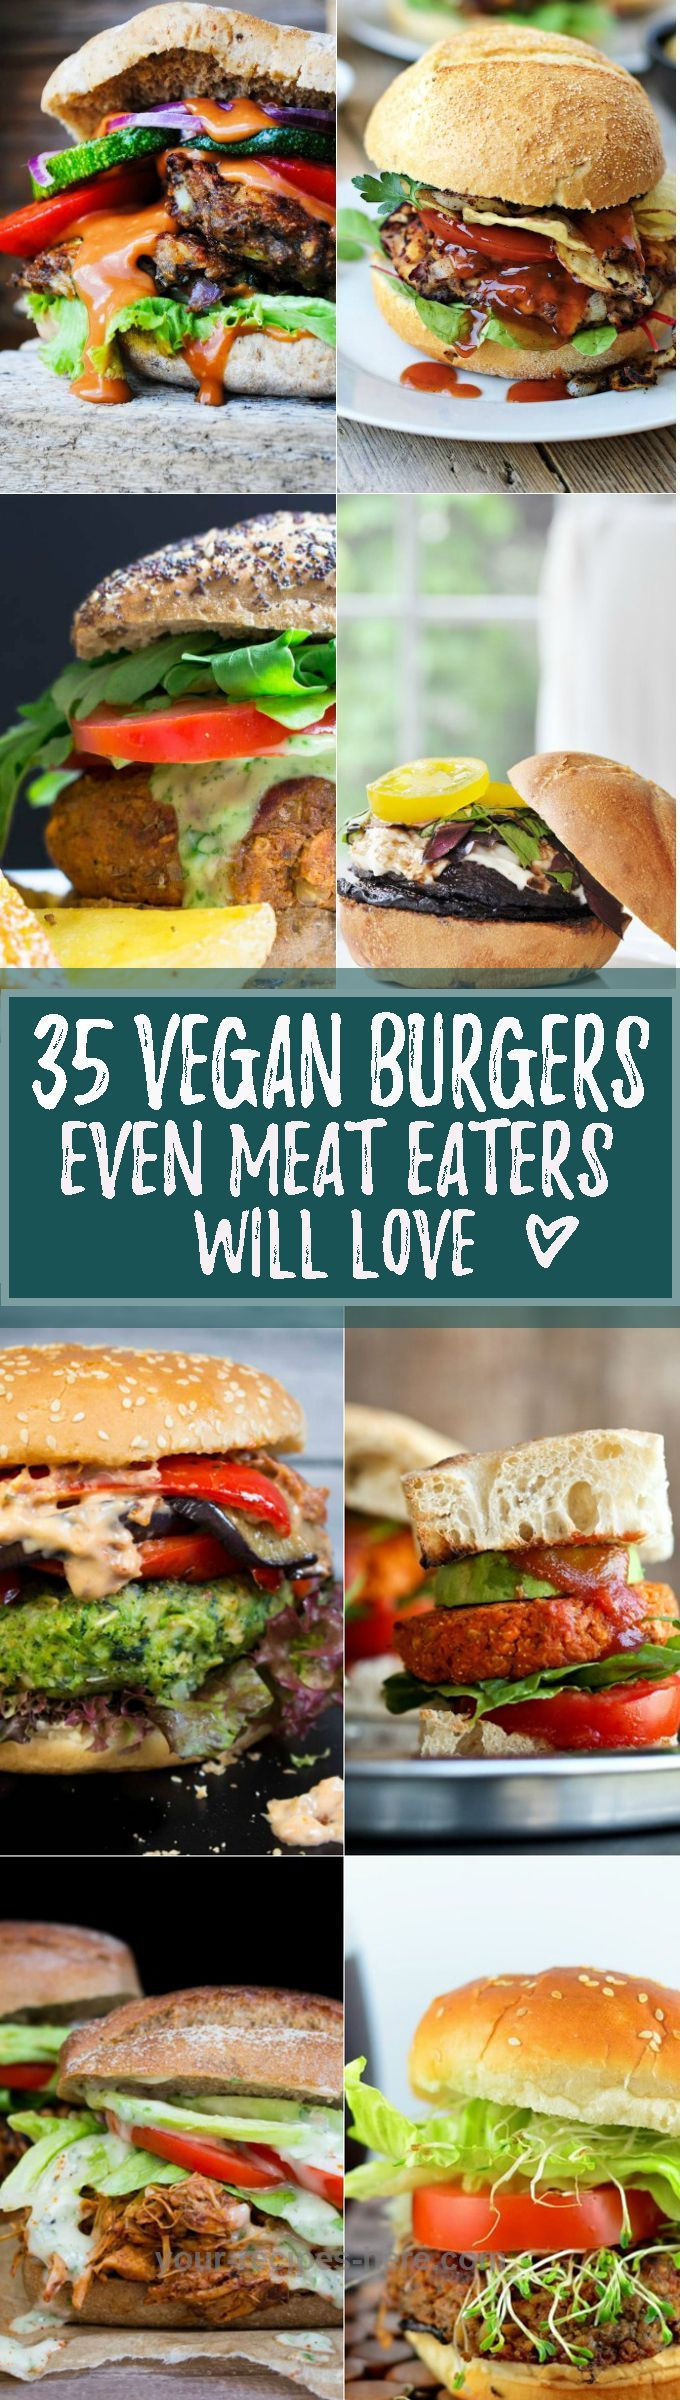 Check out this list of 35 totally drool-worthy healthy veggie burgers that are perfect for meat-lovers, vegetarians, and vegans alike! These vegan burgers are all AMAZING! ♥ |  veganheaven.org